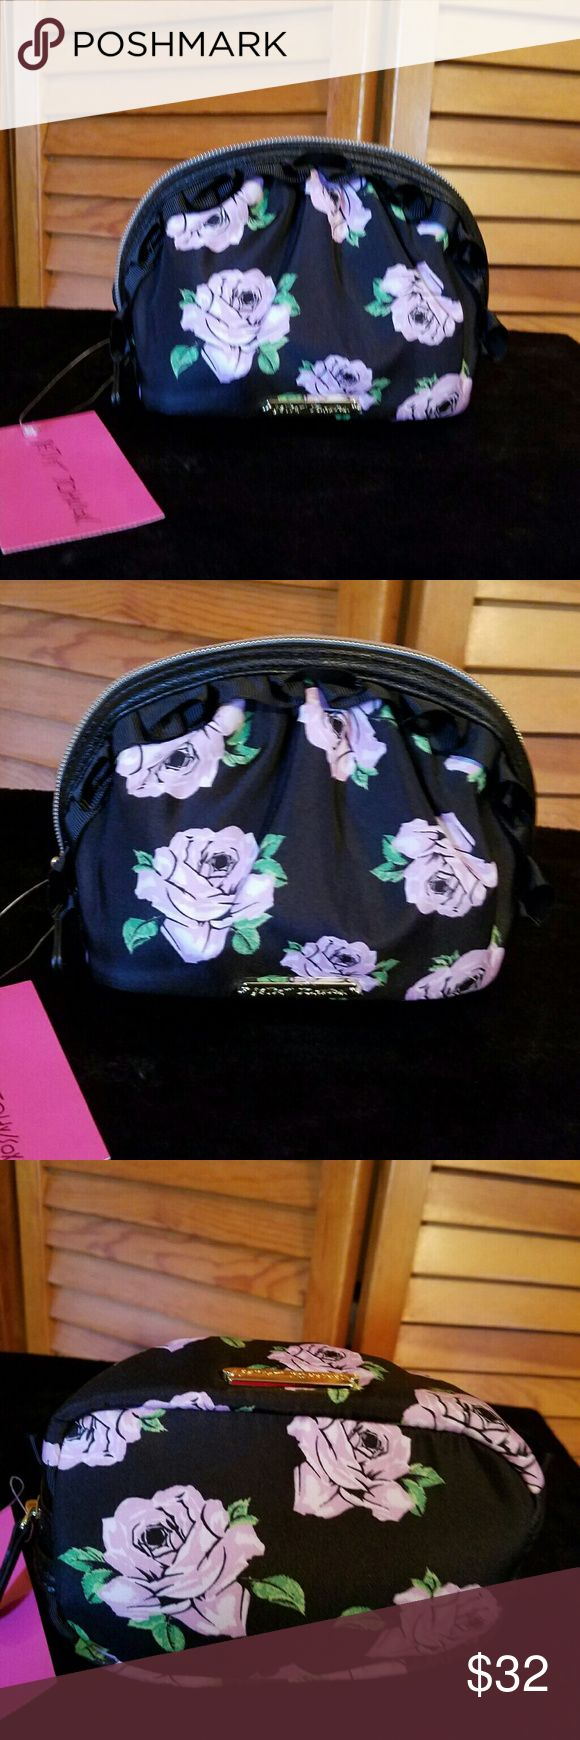 """🌹NWT- BETSEY JOHNSON FLORAL DESIGN COSMETIC BAG 🌹NWT- BETSEY JOHNSON FLORAL RUFFLE DESIGN COSMETIC BAG THIS IS AN ABSOLUTE BEAUTIFUL BAG FROM BETSEY ONE OF MY FAVORITES & RARE FIND❤  APPROXIMATE SIZE 7""""WX 5.5""""H   🌹NWT-BRAND NEW WITH TAGS - NEVER USED 🌹100% AUTHENTIC 🌹SAME DAY SHIPPING 🌹NO TRADES  🚫PLEASE READ MY CLOSET RULES AND FOLLOW PLEASE NO RUDE COMMENTS LETS ALL BE RESPECTFUL TOWARDS ONE ANOTHER 😊  💋www.shopaprilsboutique.com💋 Betsey Johnson Bags Cosmetic Bags & Cases"""